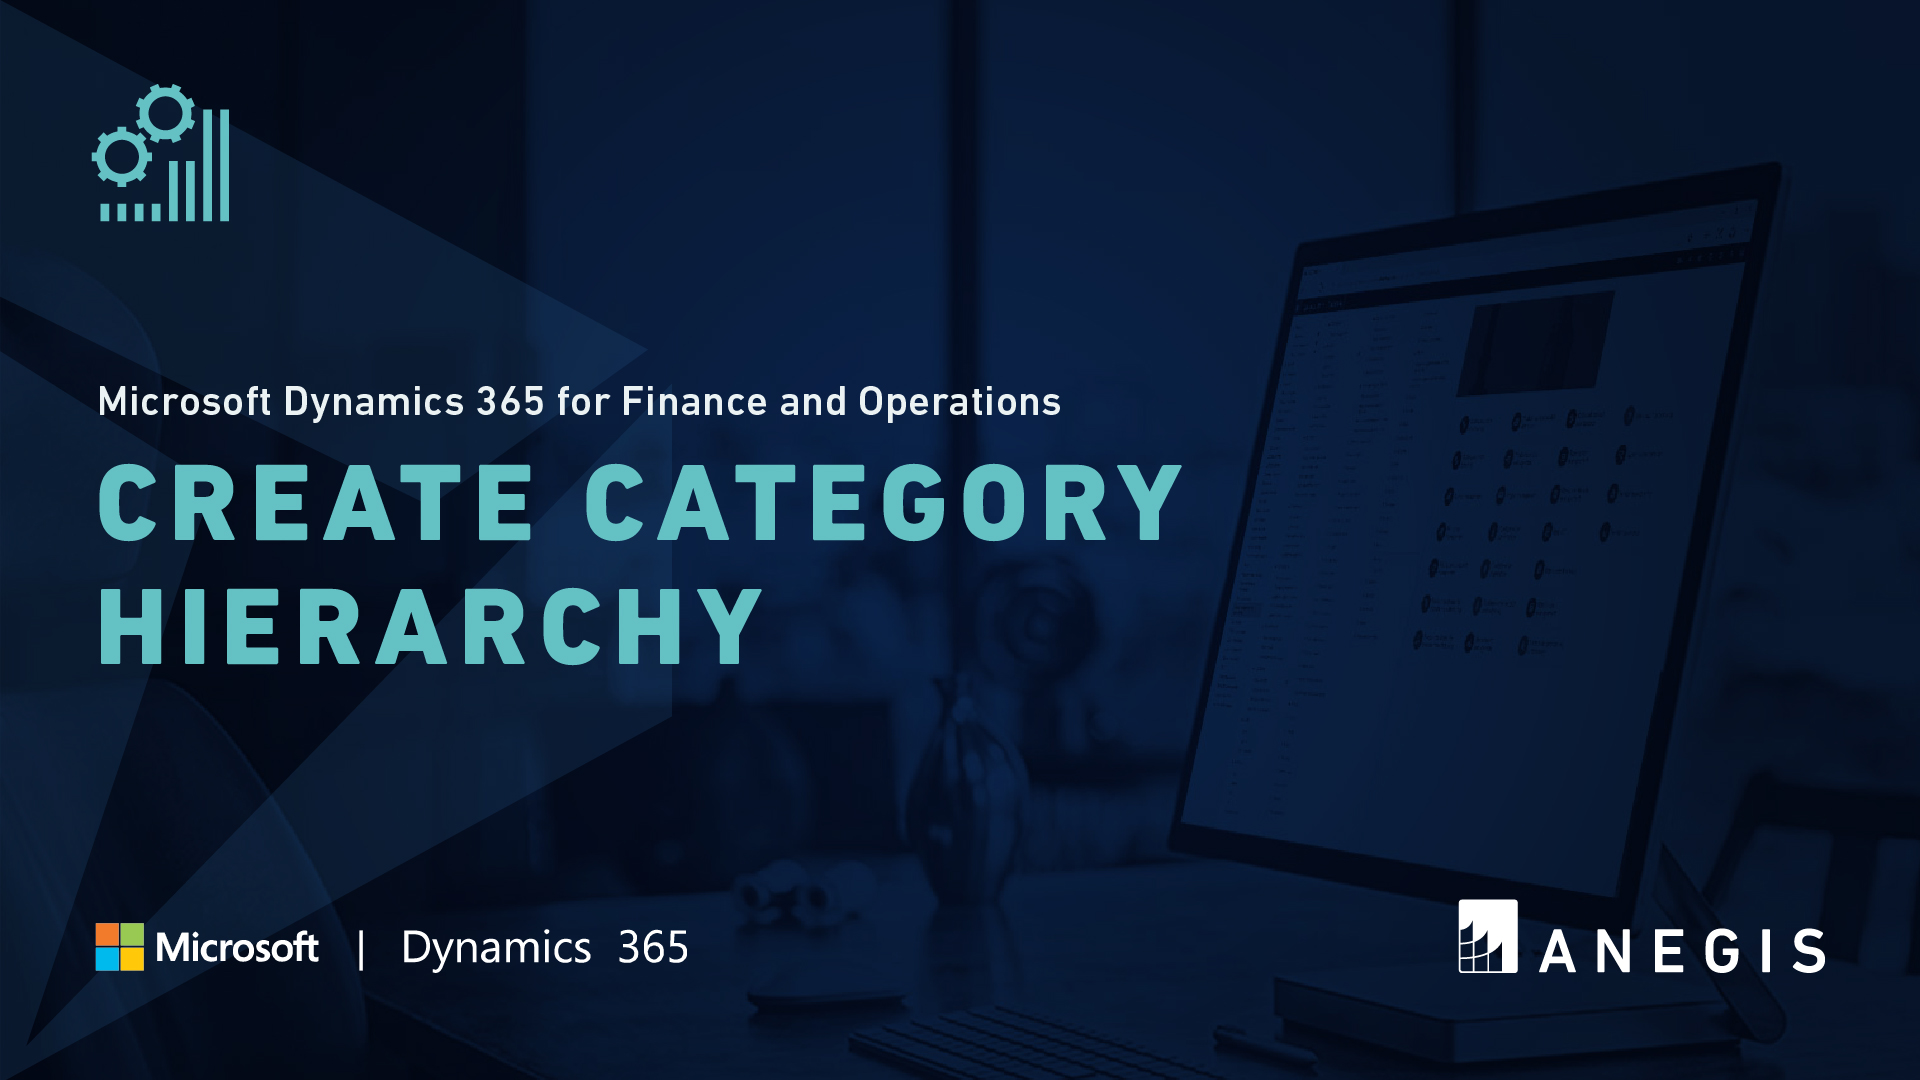 D365 F&O: Create Category Hierarchy